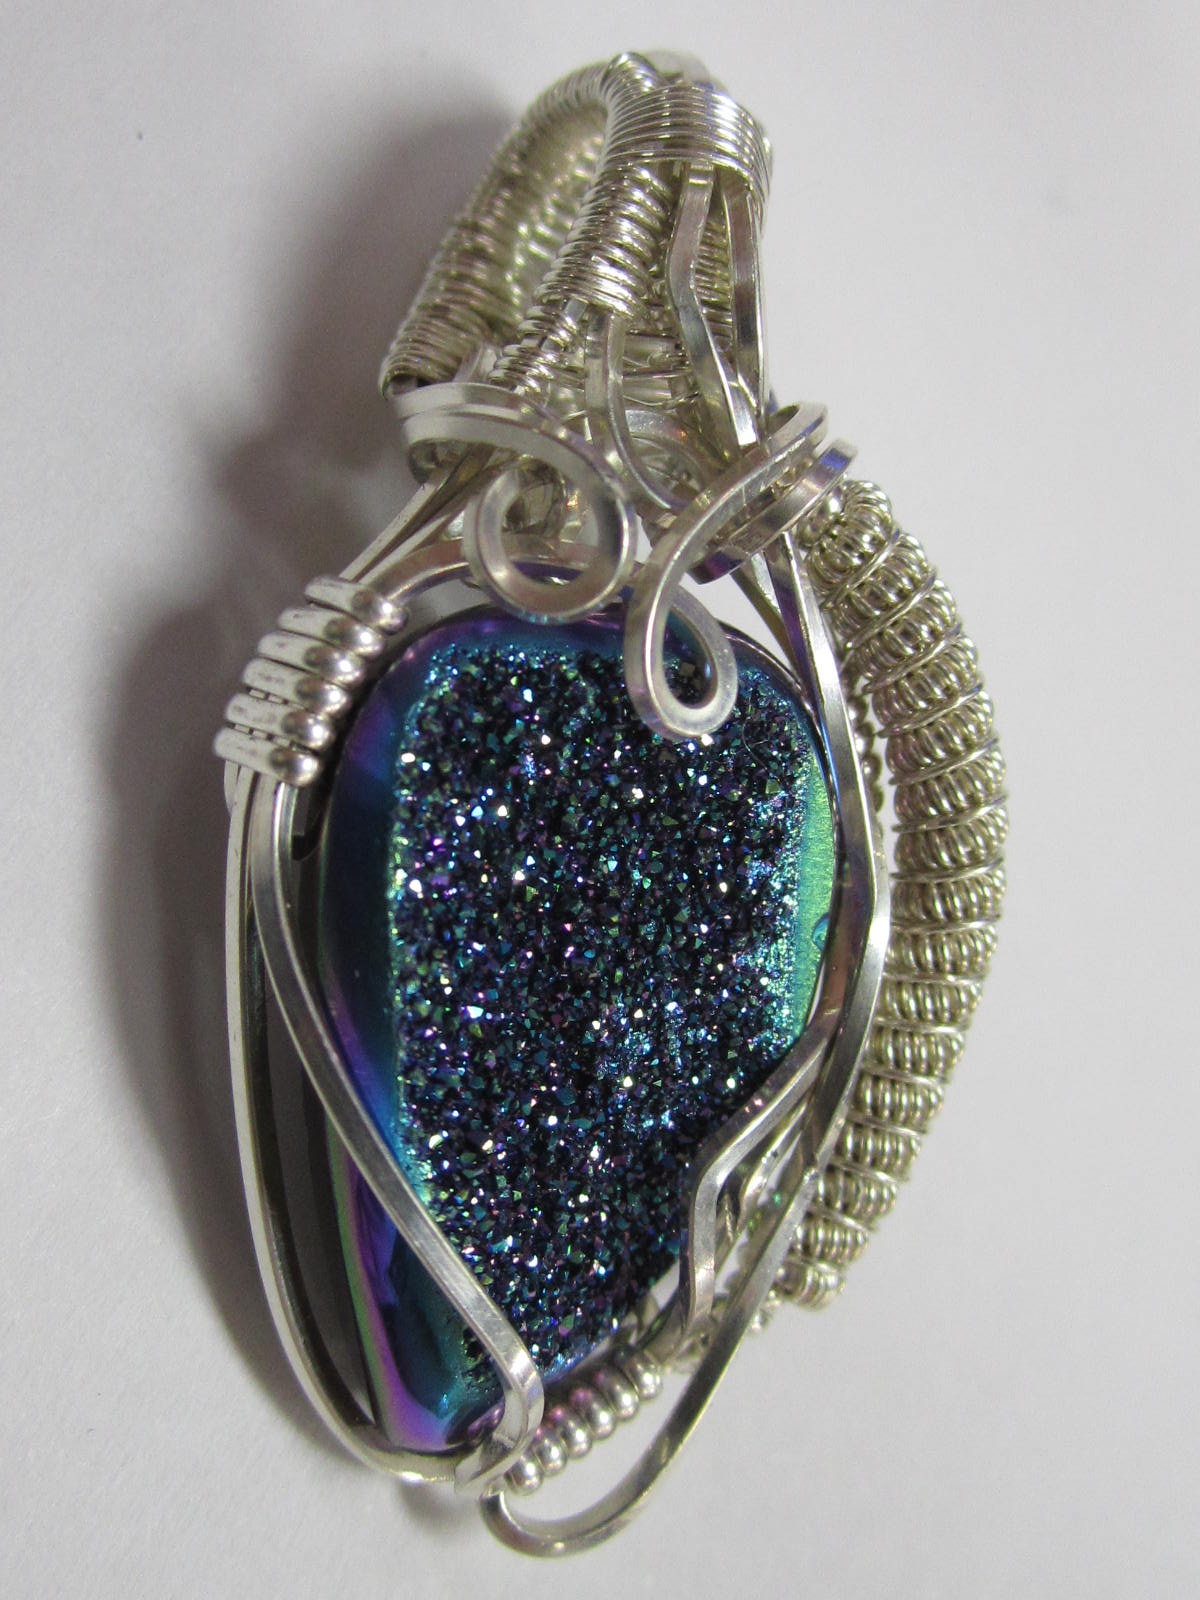 Wire Wrap Sterling Silver Data Wiring Club4ag Forum Topics 20v Into Ae86 Q Pendant Druzy Quartz In Bead World Beads Rh Beadworldbeads Com Patterned Gauge Chart